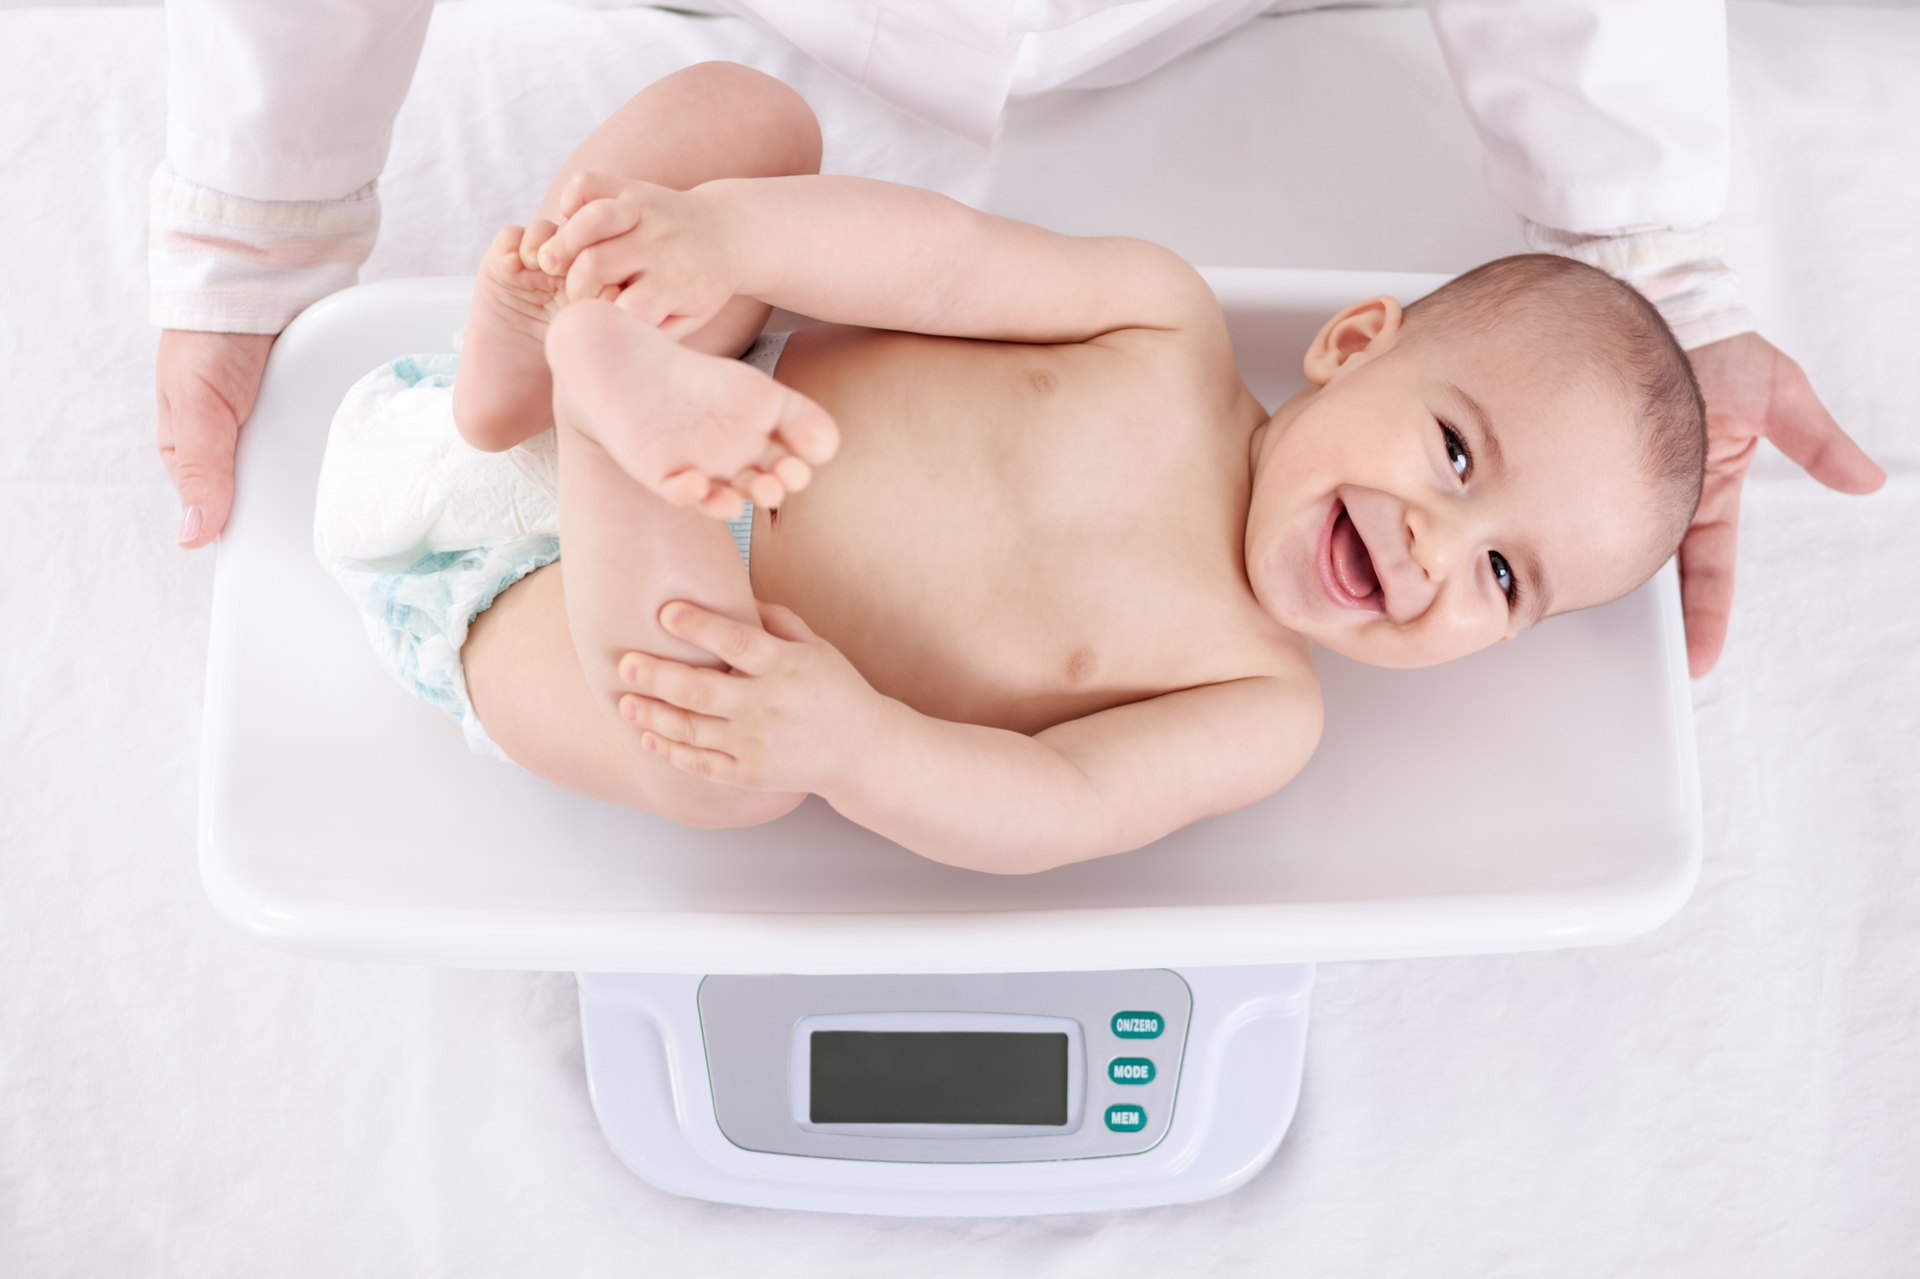 Normal weight of four and five month old infants livestrong nvjuhfo Images